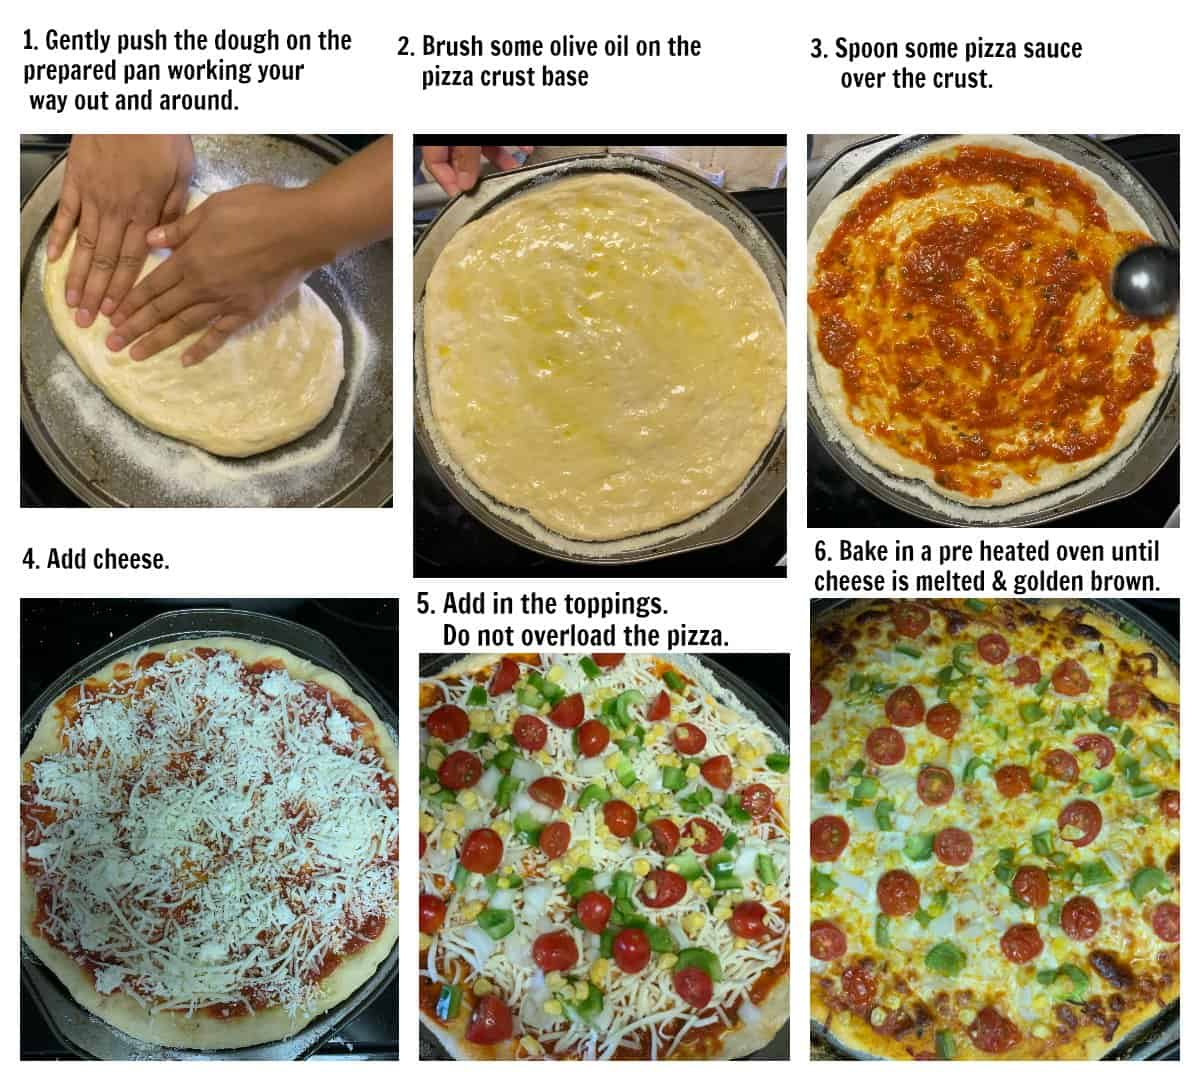 Instructions on making the pizza base on a pizza pan and baking it.